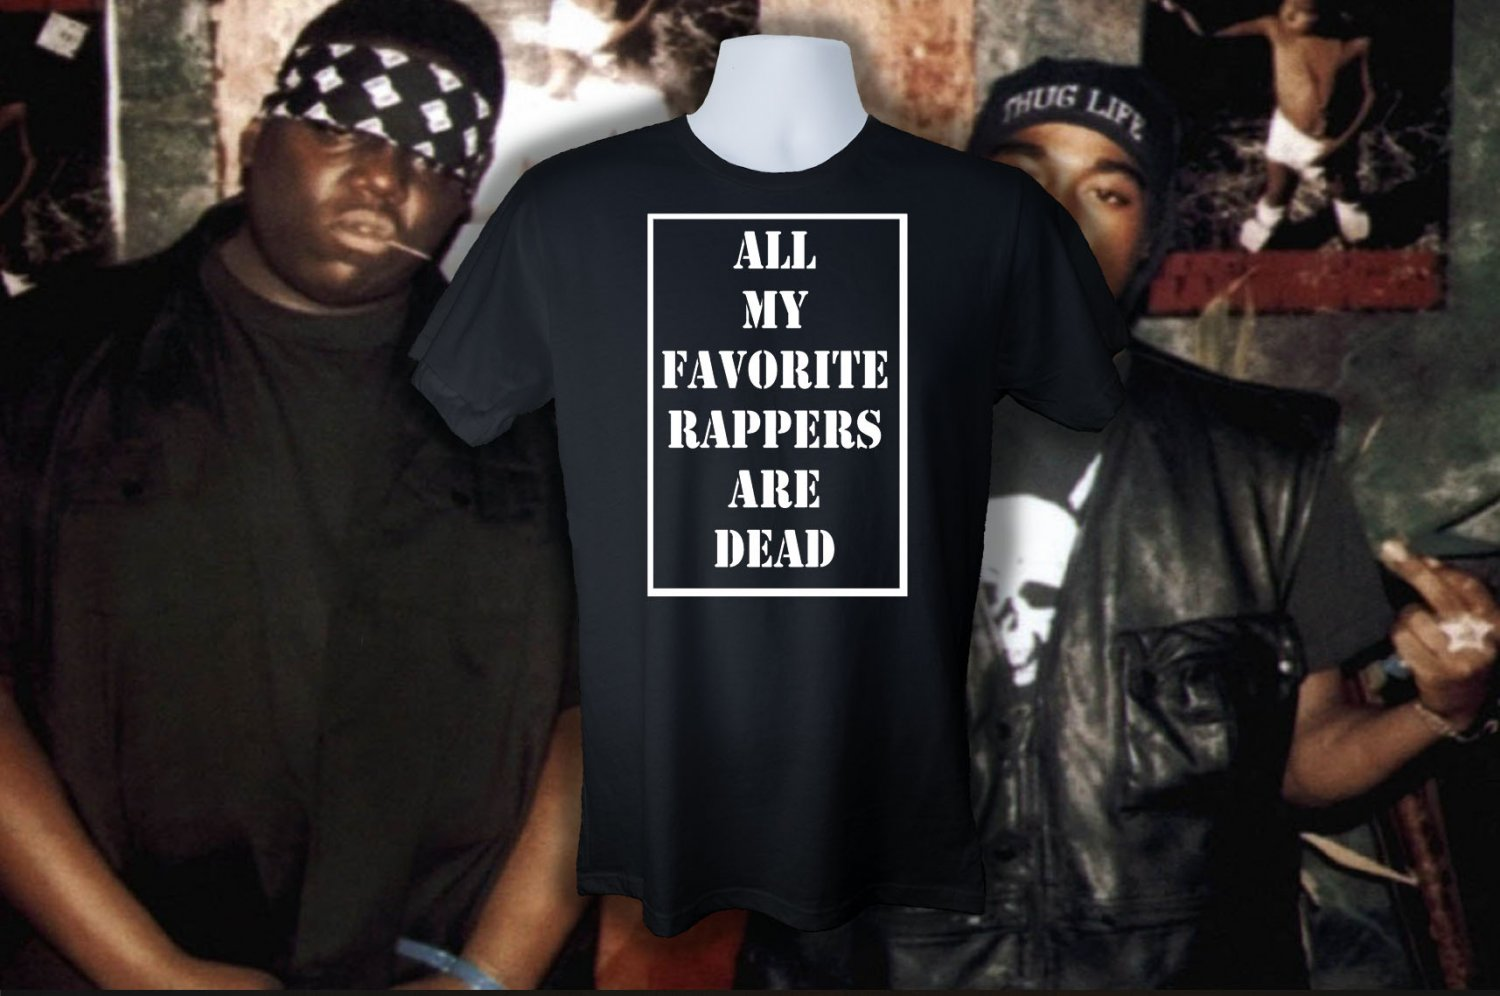 ALL MY FAVORITE RAPPERS ARE DEAD T SHIRT 3XL